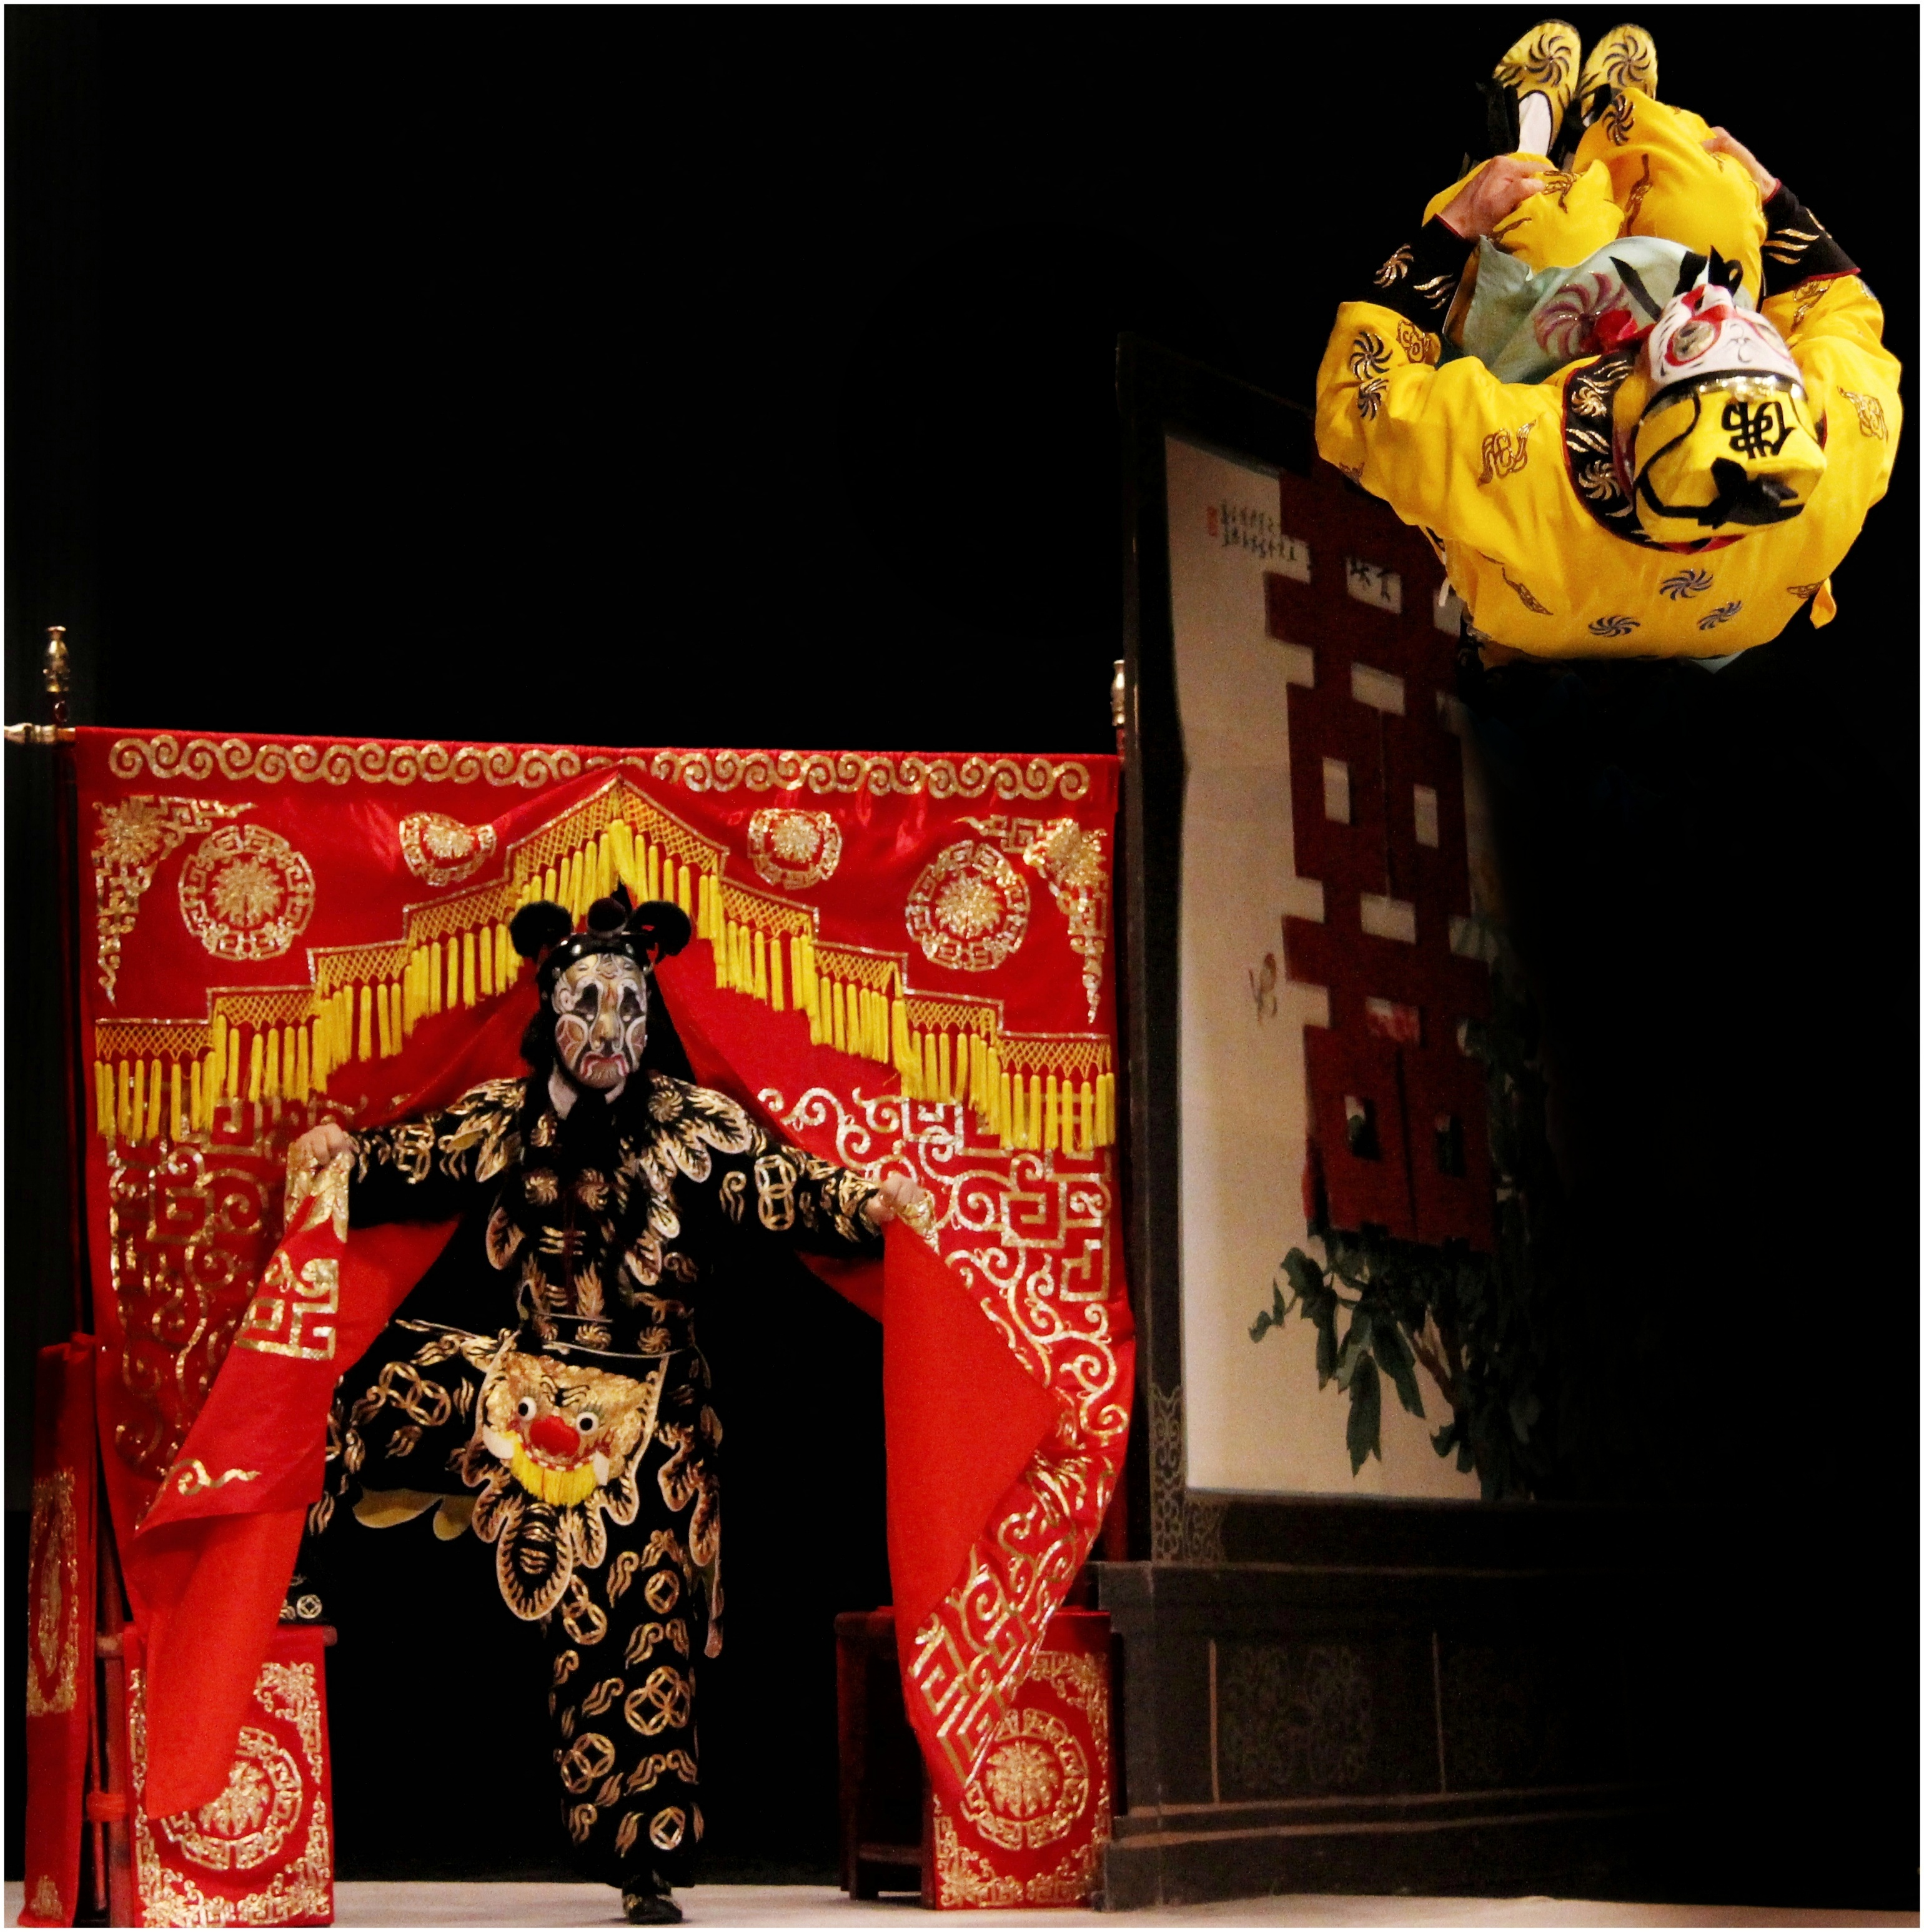 58feabbb3 ... the Virtue and Punishing the Vice', highlights the stunning acrobatic  skills as the Monkey King and his friends battle the wicked Leopard Spirit.